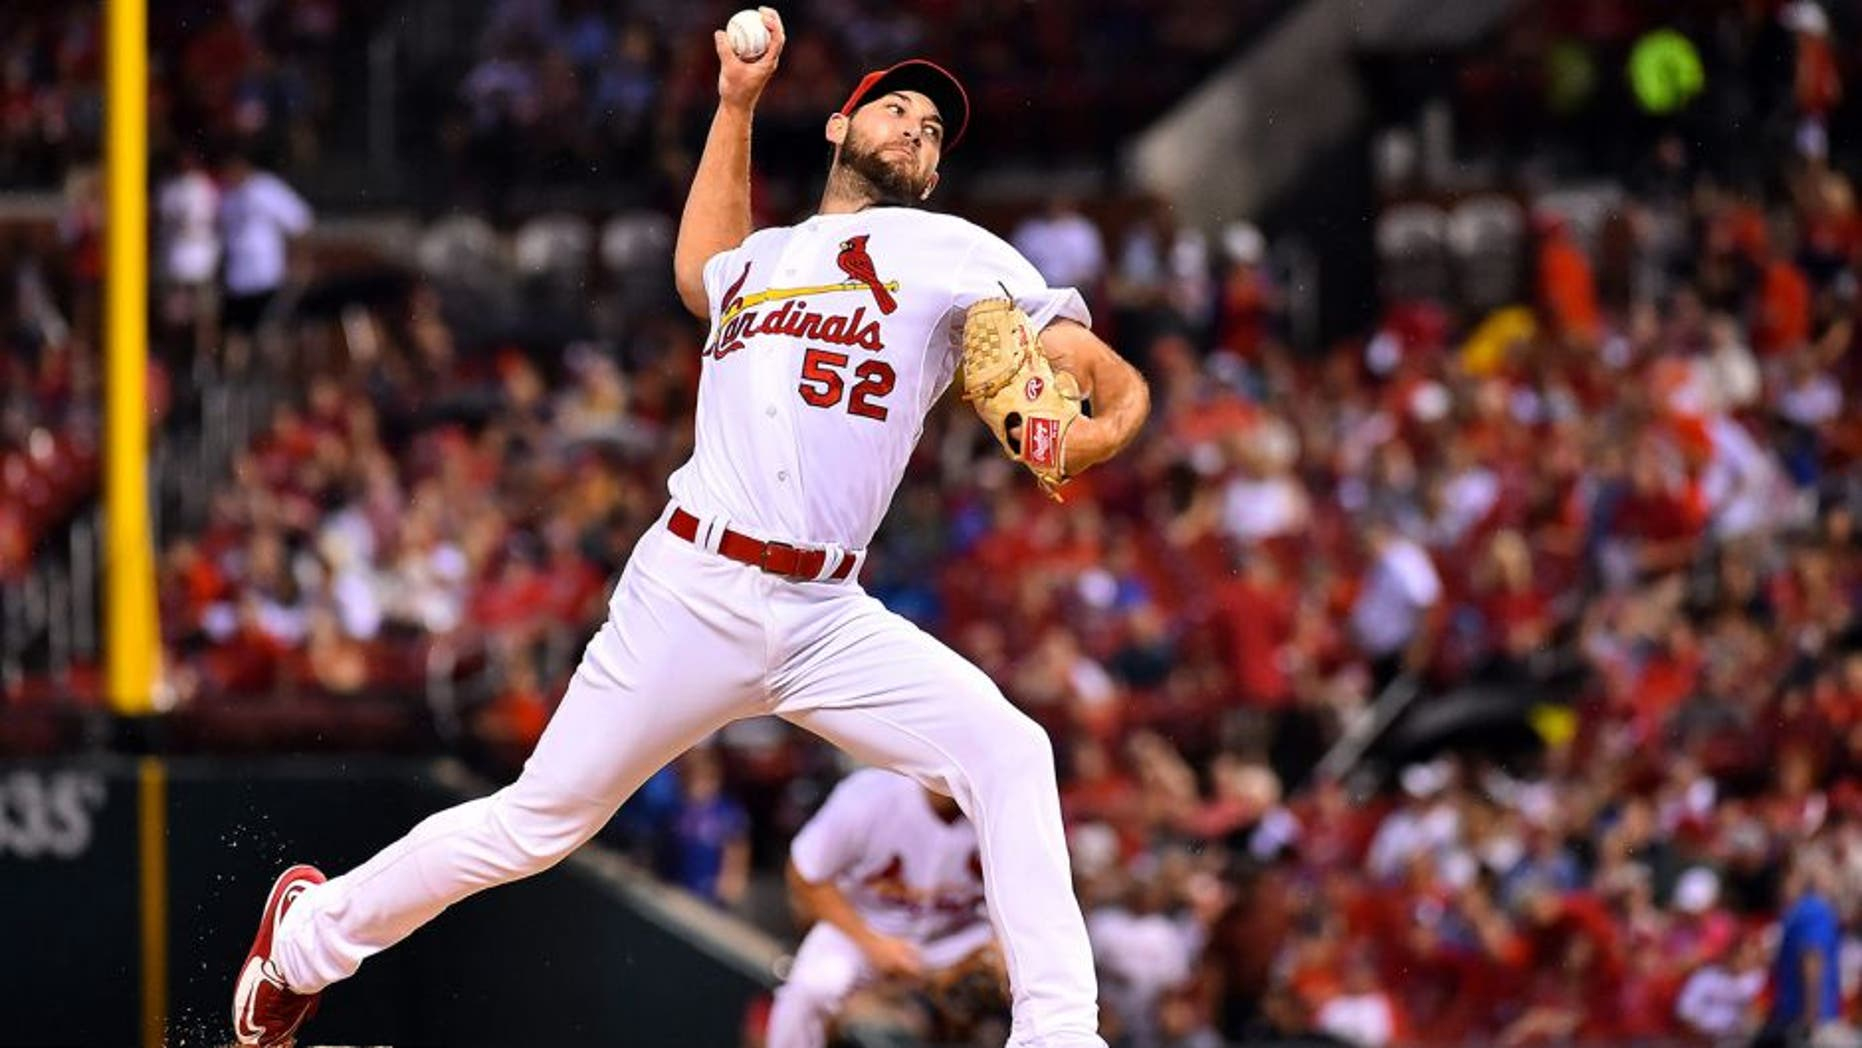 Sep 8, 2015; St. Louis, MO, USA; St. Louis Cardinals starting pitcher Michael Wacha (52) delivers a pitch in the first inning against the Chicago Cubs at Busch Stadium. Mandatory Credit: Jasen Vinlove-USA TODAY Sports